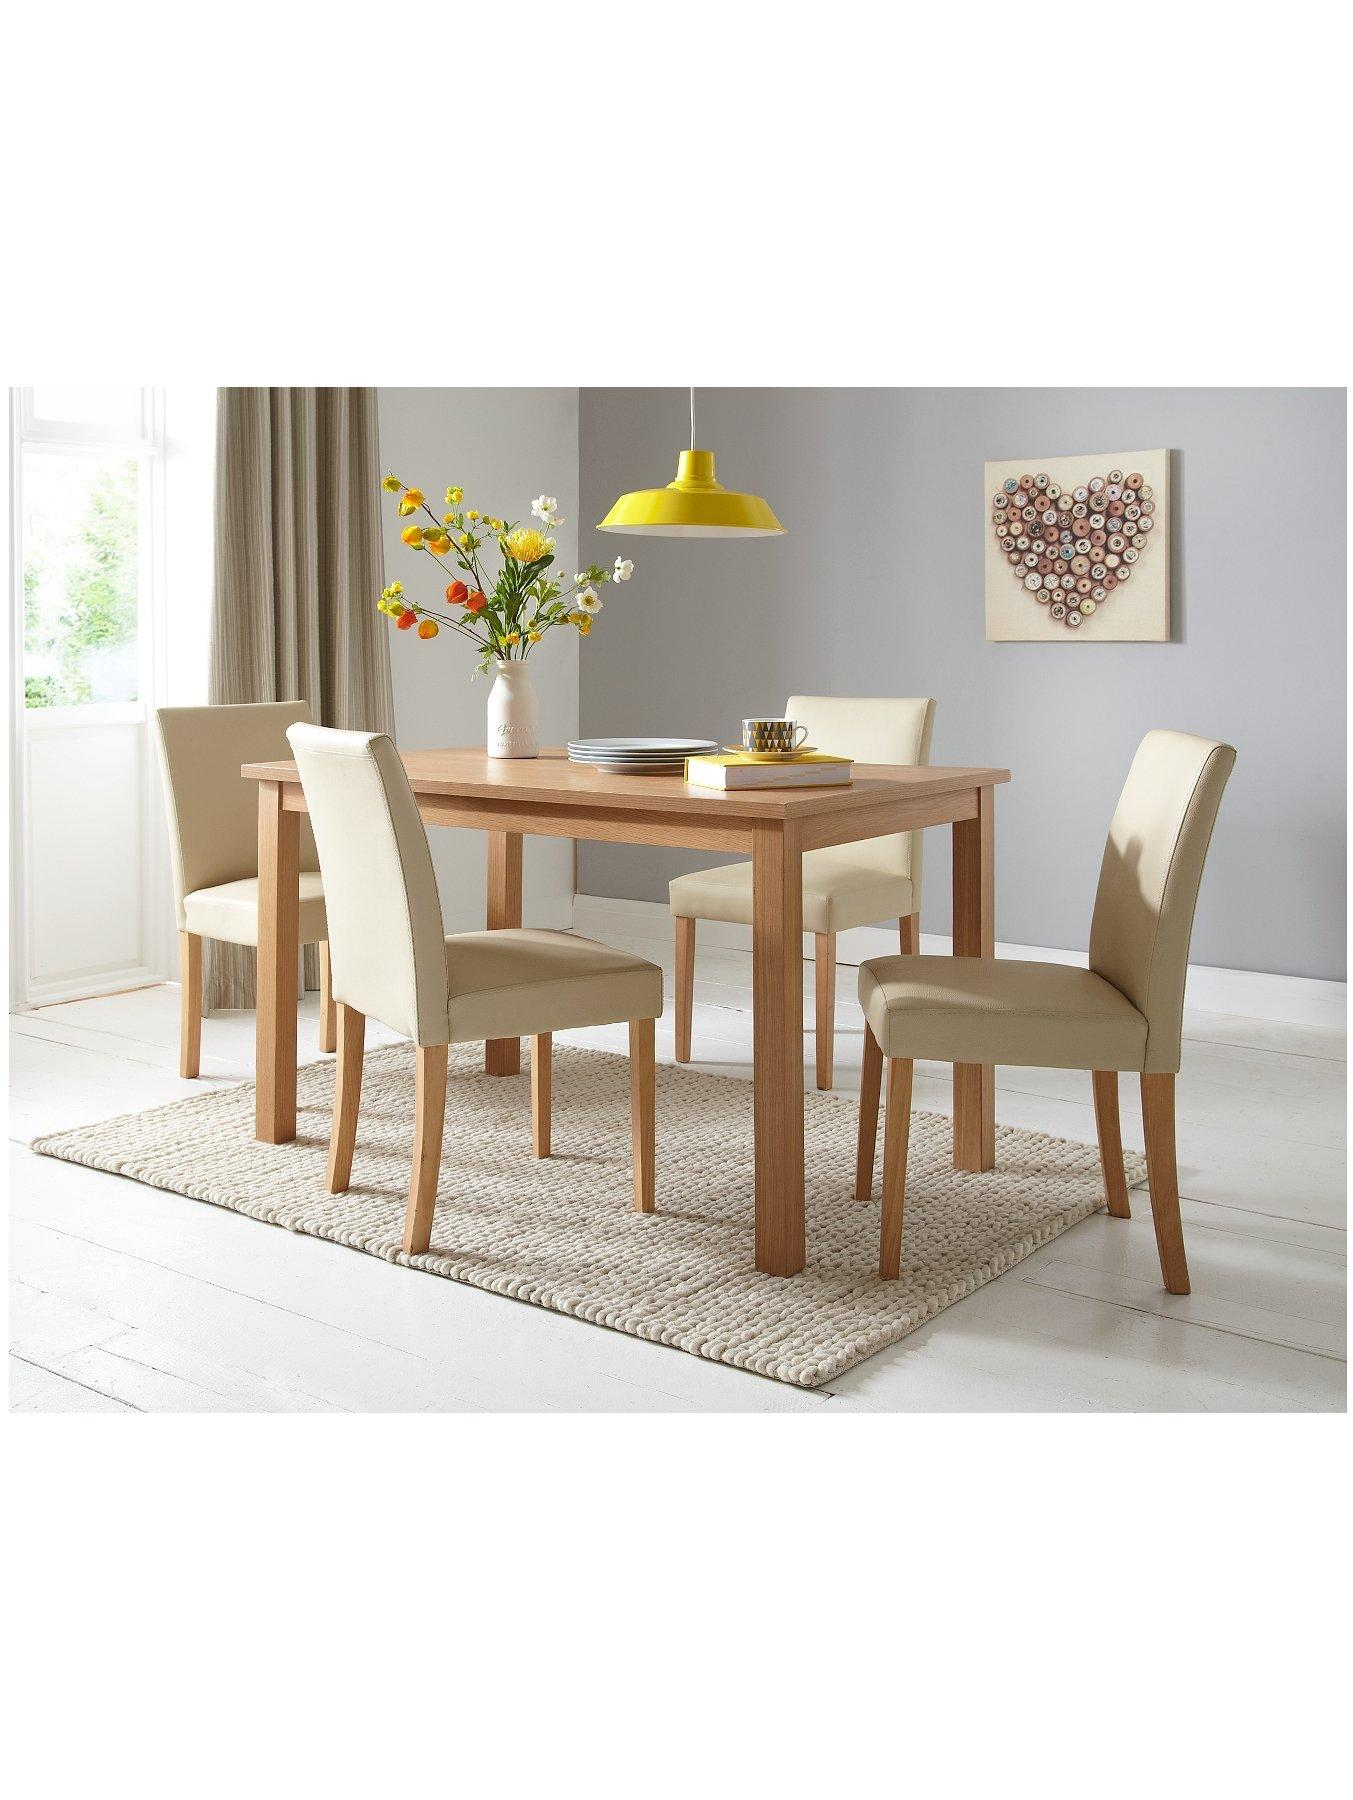 Primo 120 cm Dining Table and 4 Lucca Chairs Set verycouk